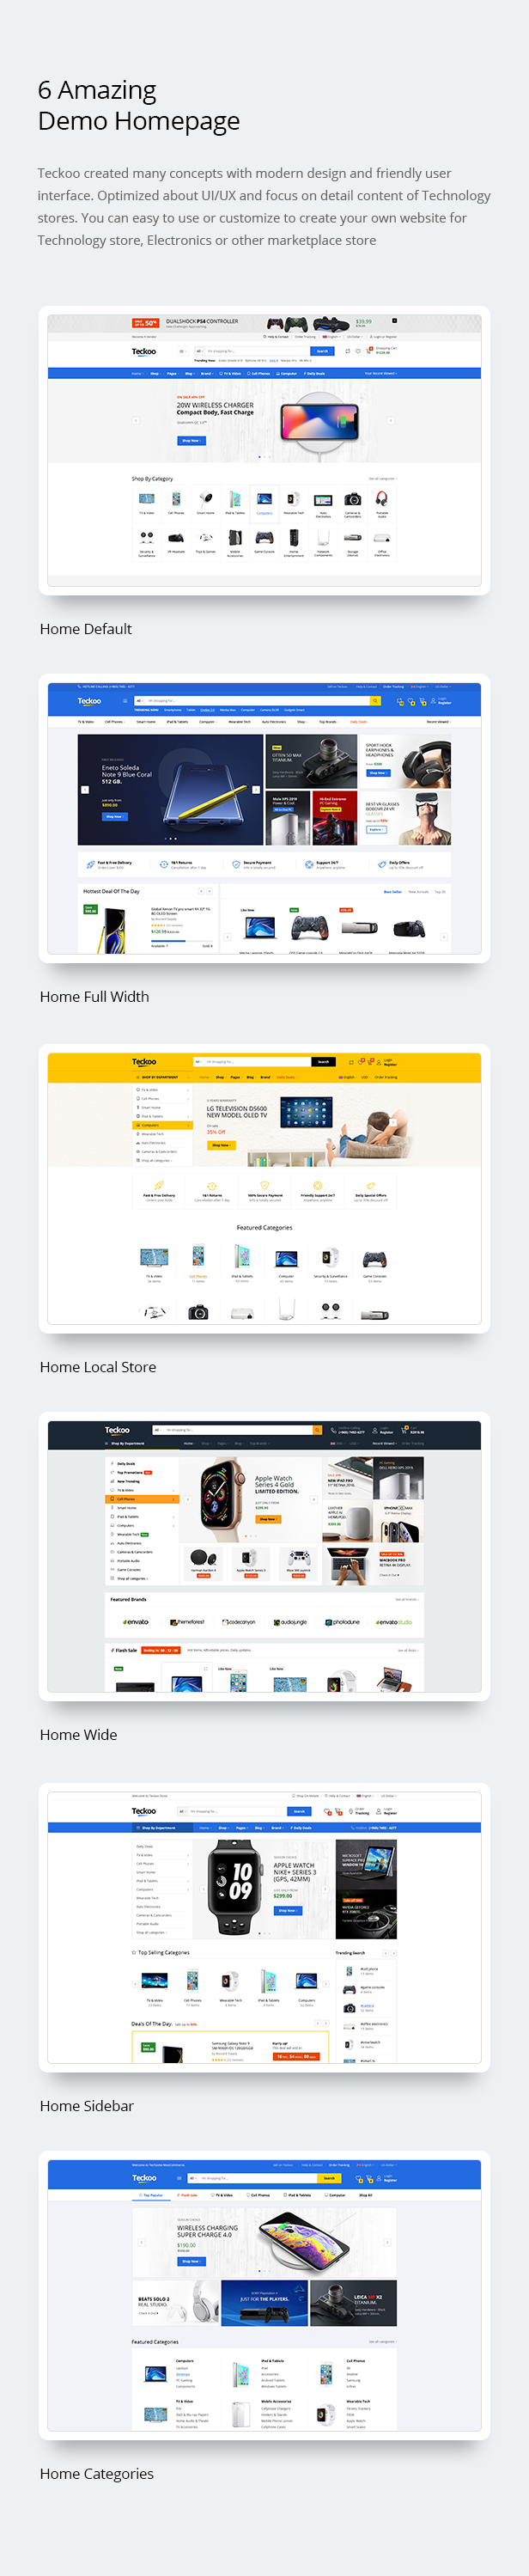 Teckoo - Electronic & Technology Marketplace eCommerce PSD Template - 5